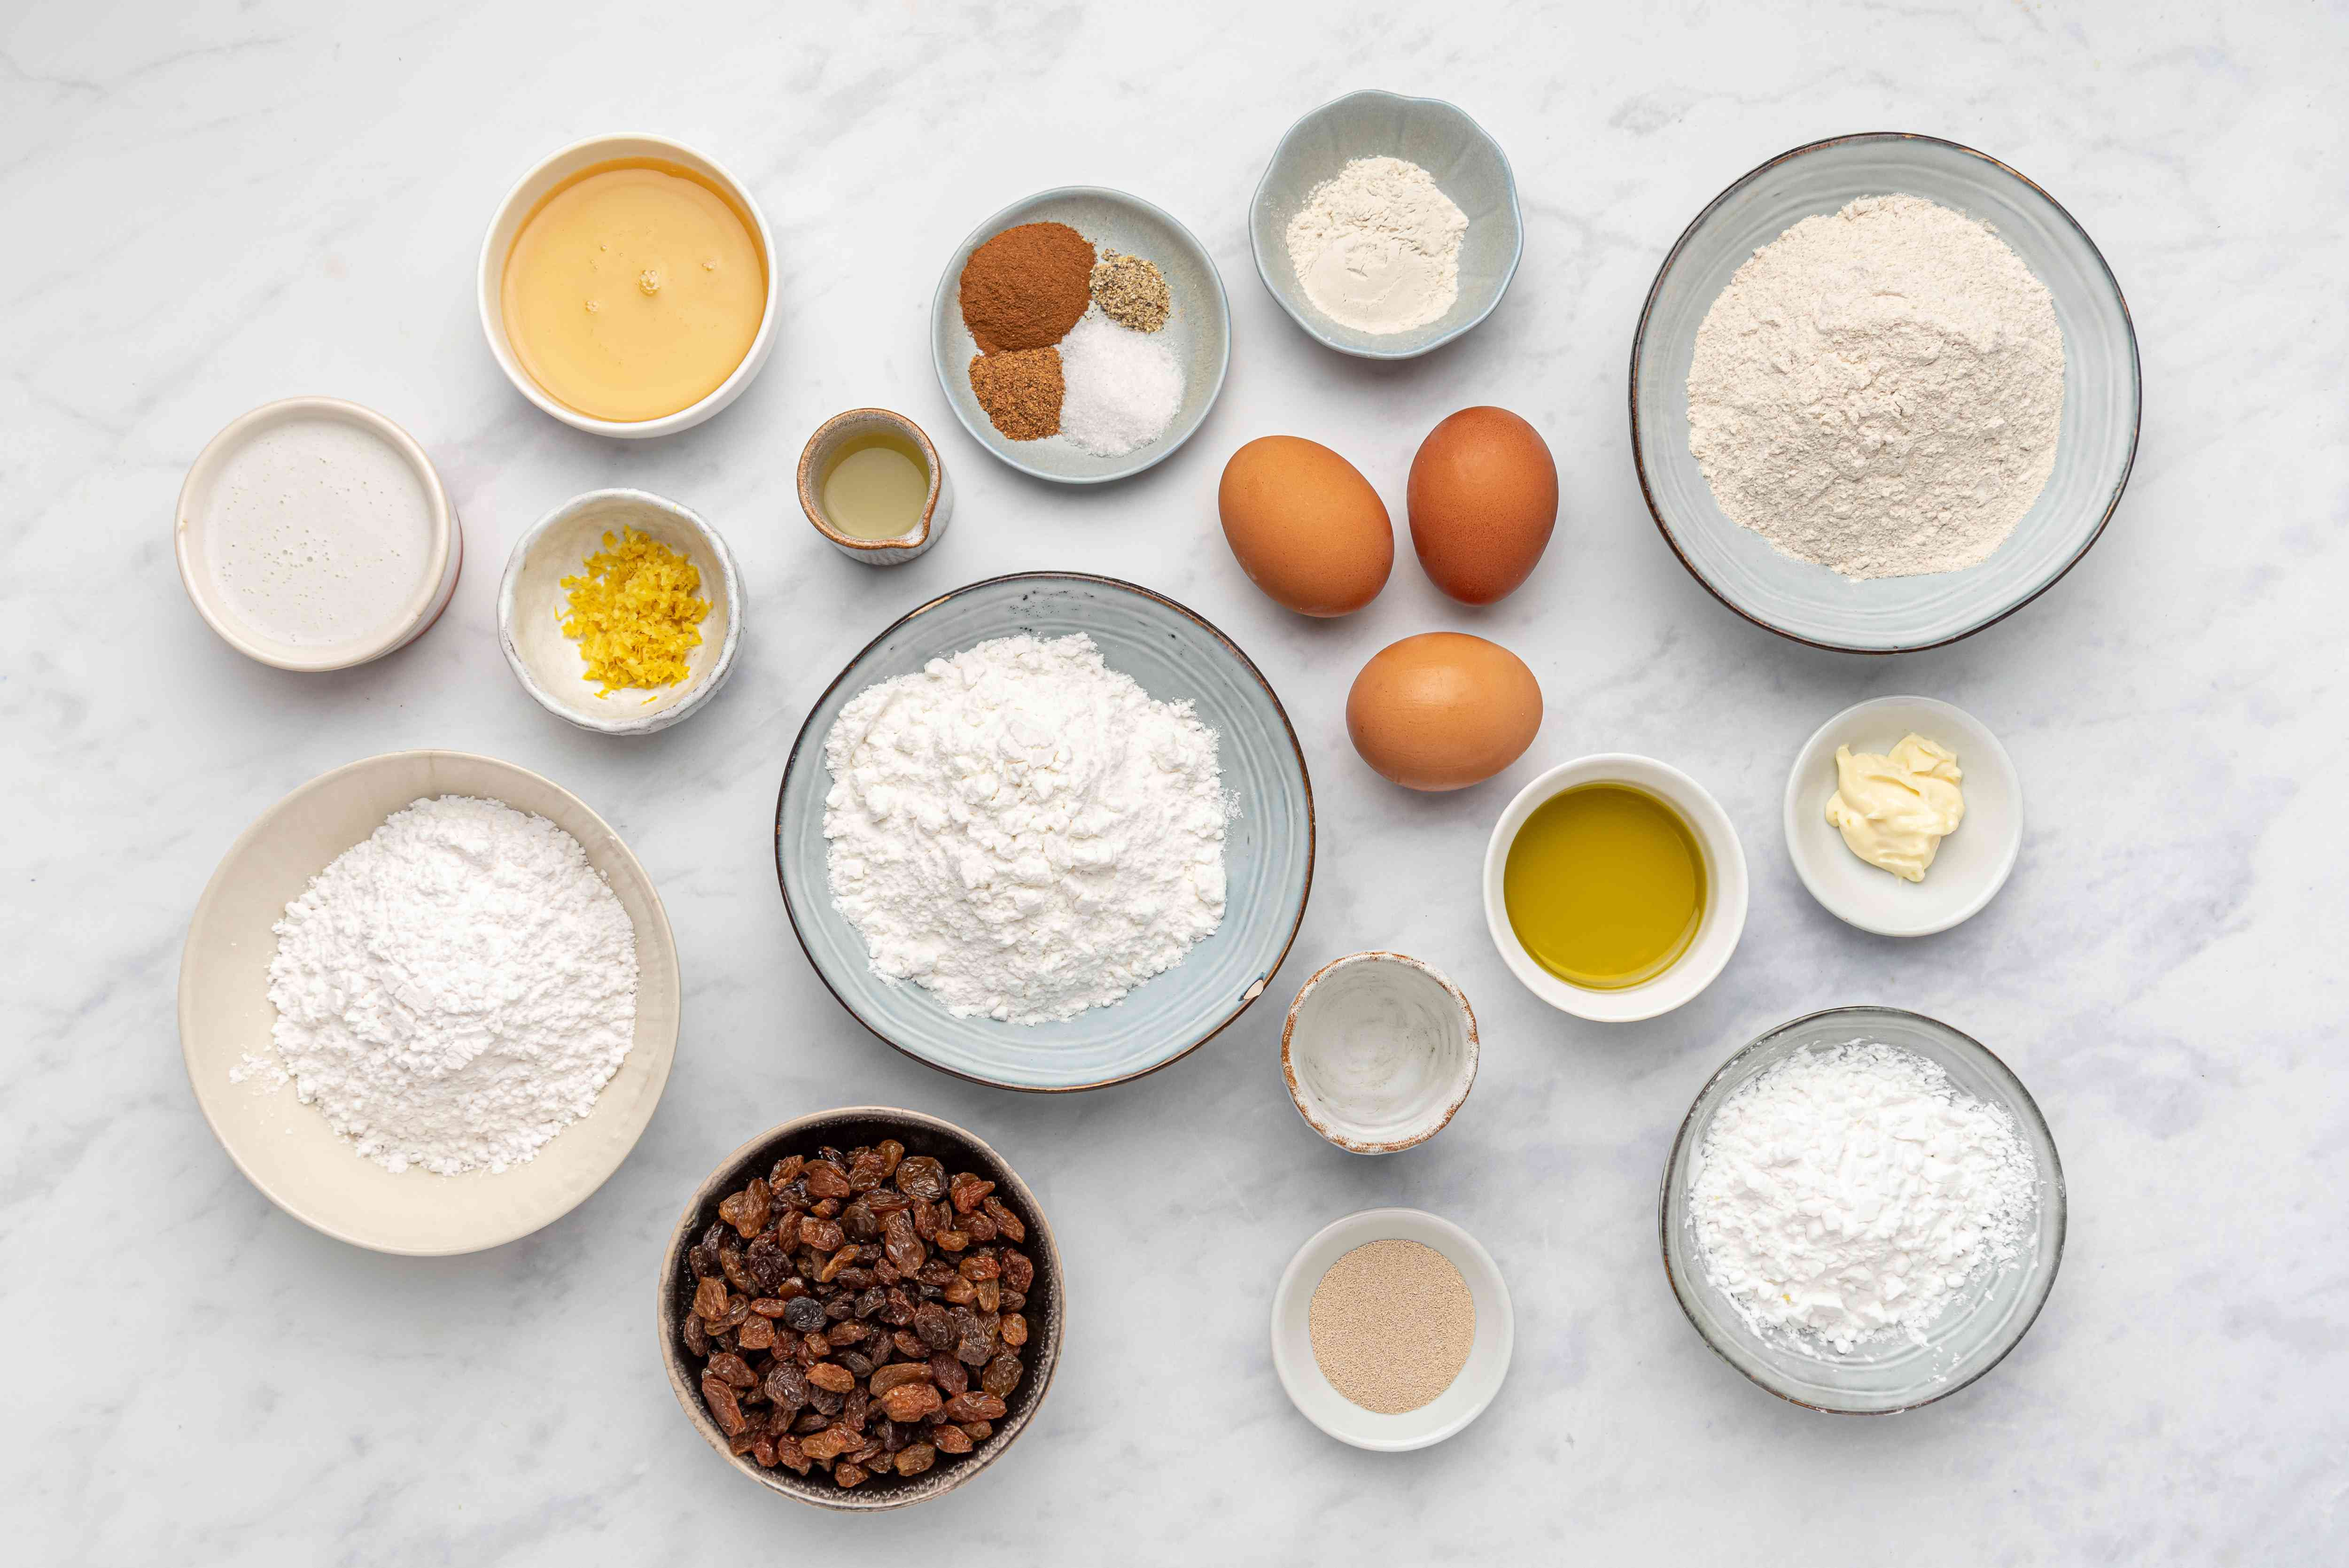 Gluten- and Dairy-Free Hot Cross Buns ingredients